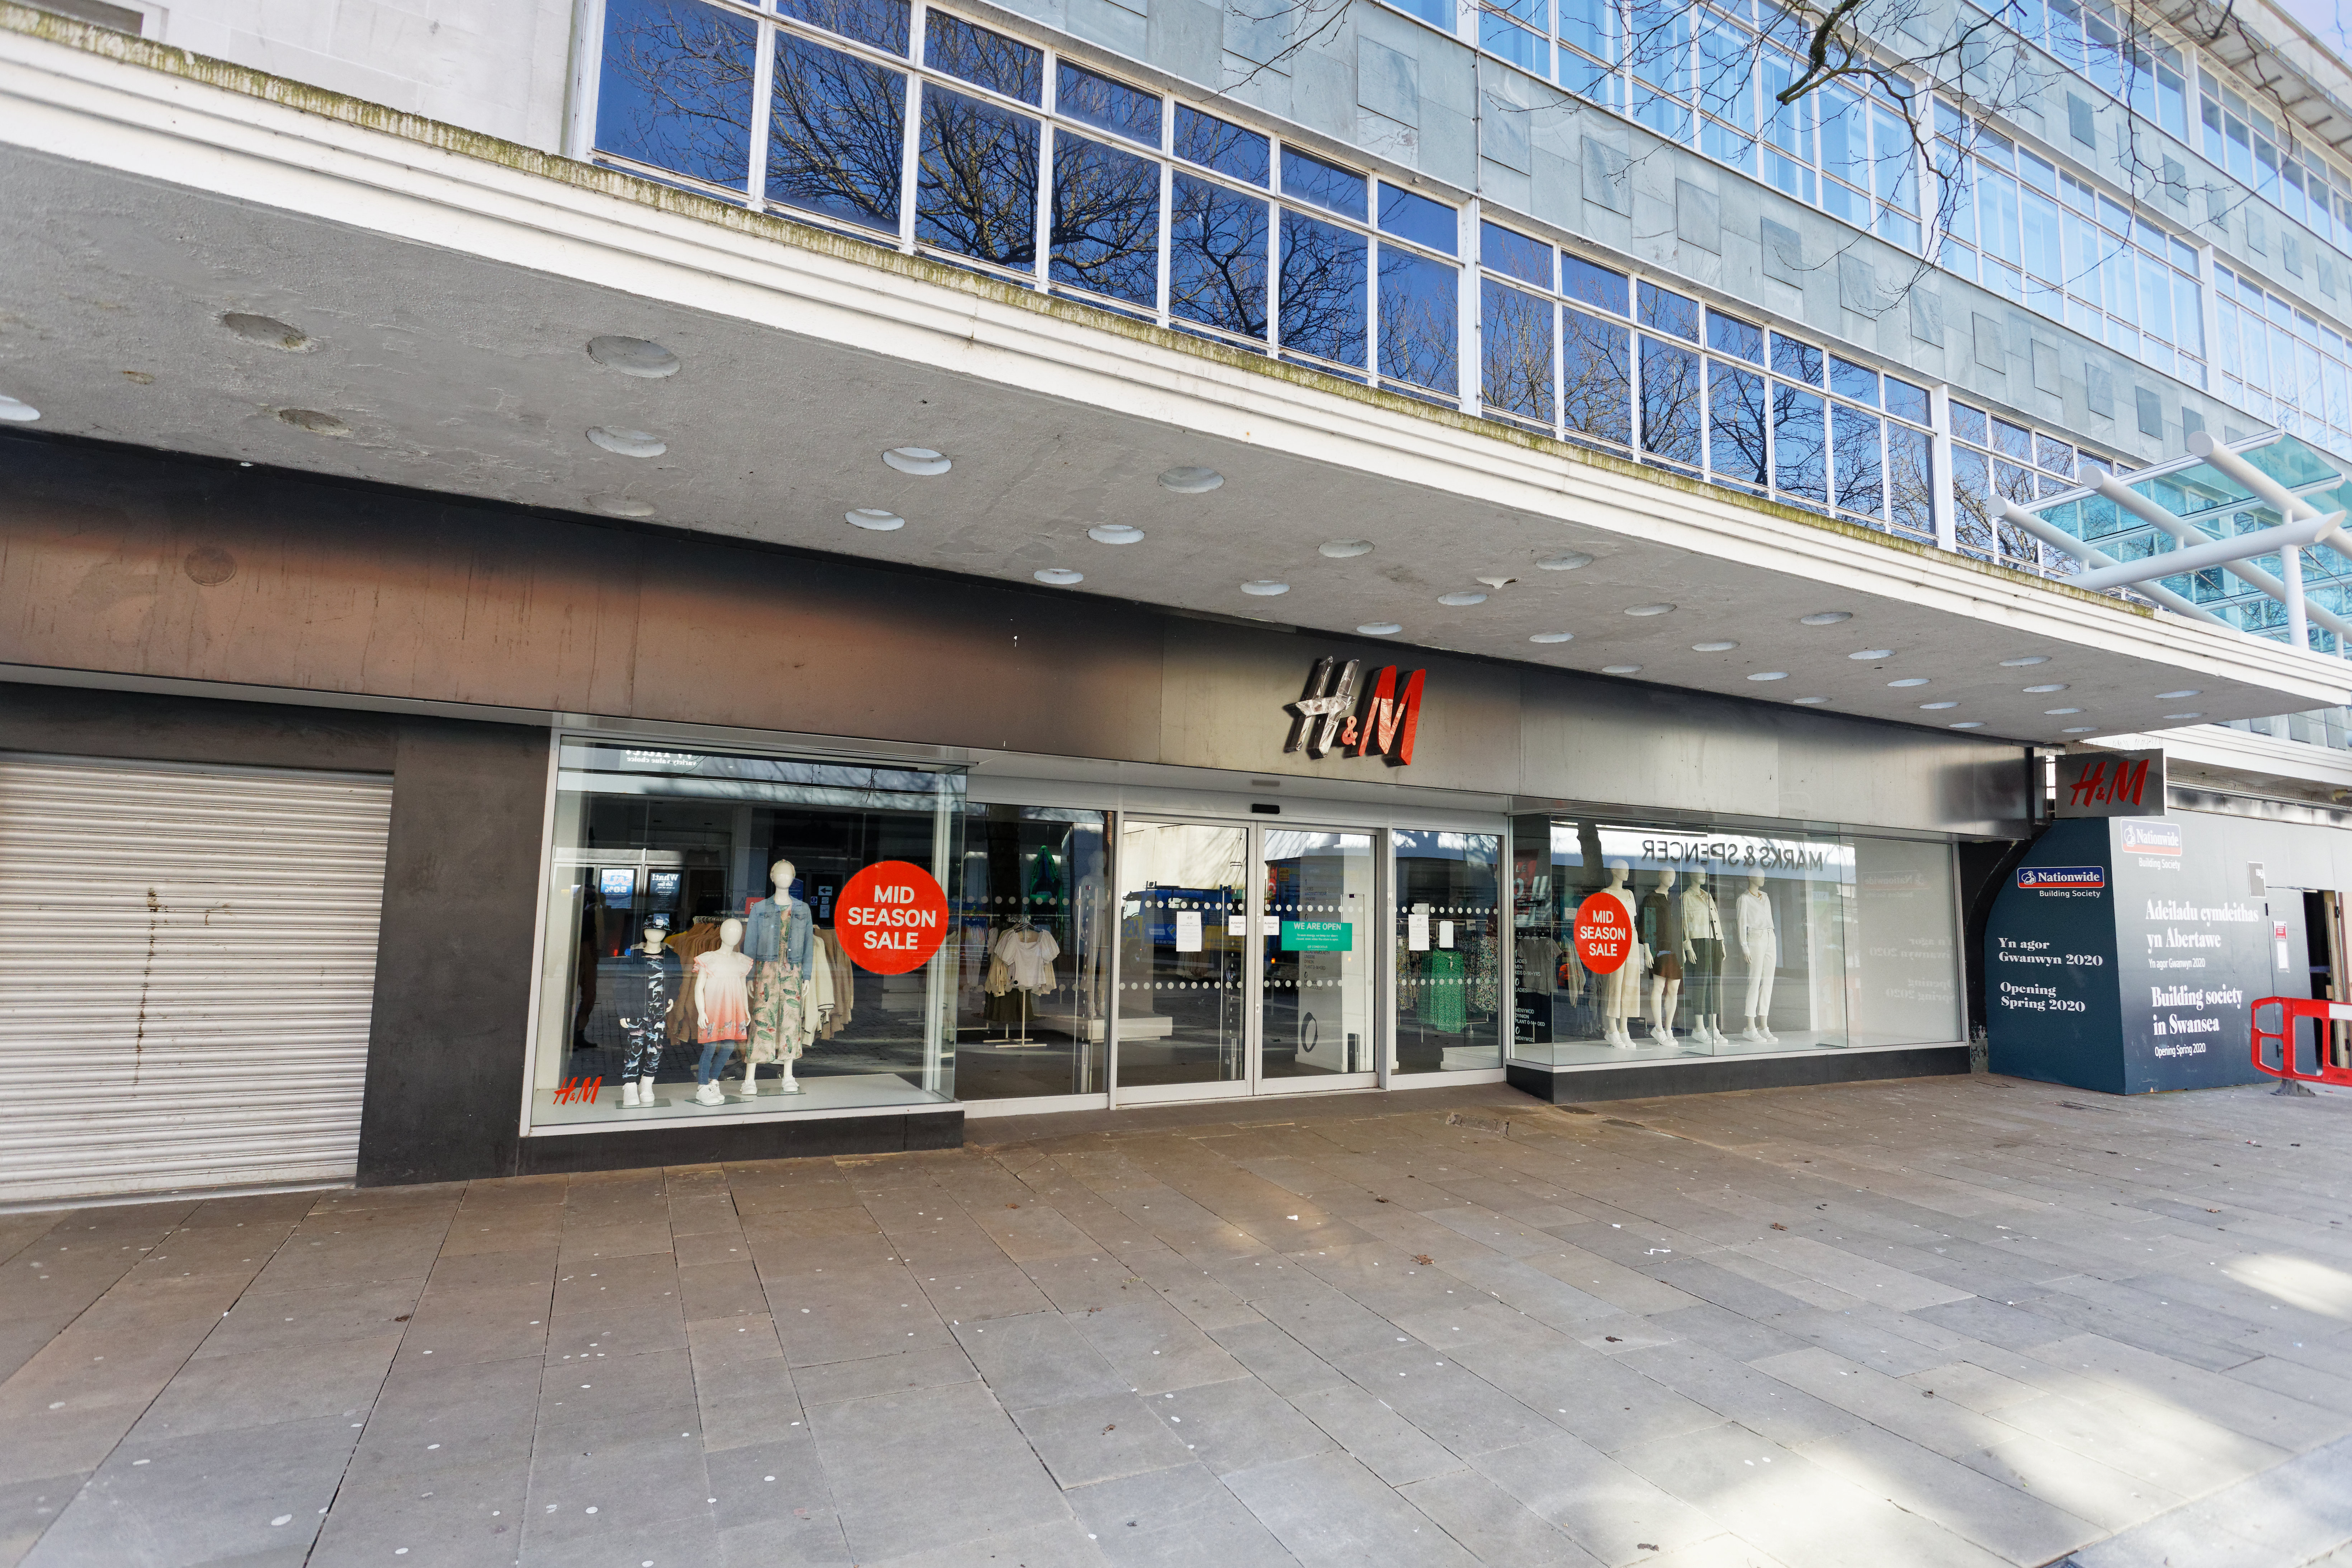 The closed H&M store in the city centre of Swansea Coronavirus outbreak, Swansea, Wales, UK - 25 Mar 2020